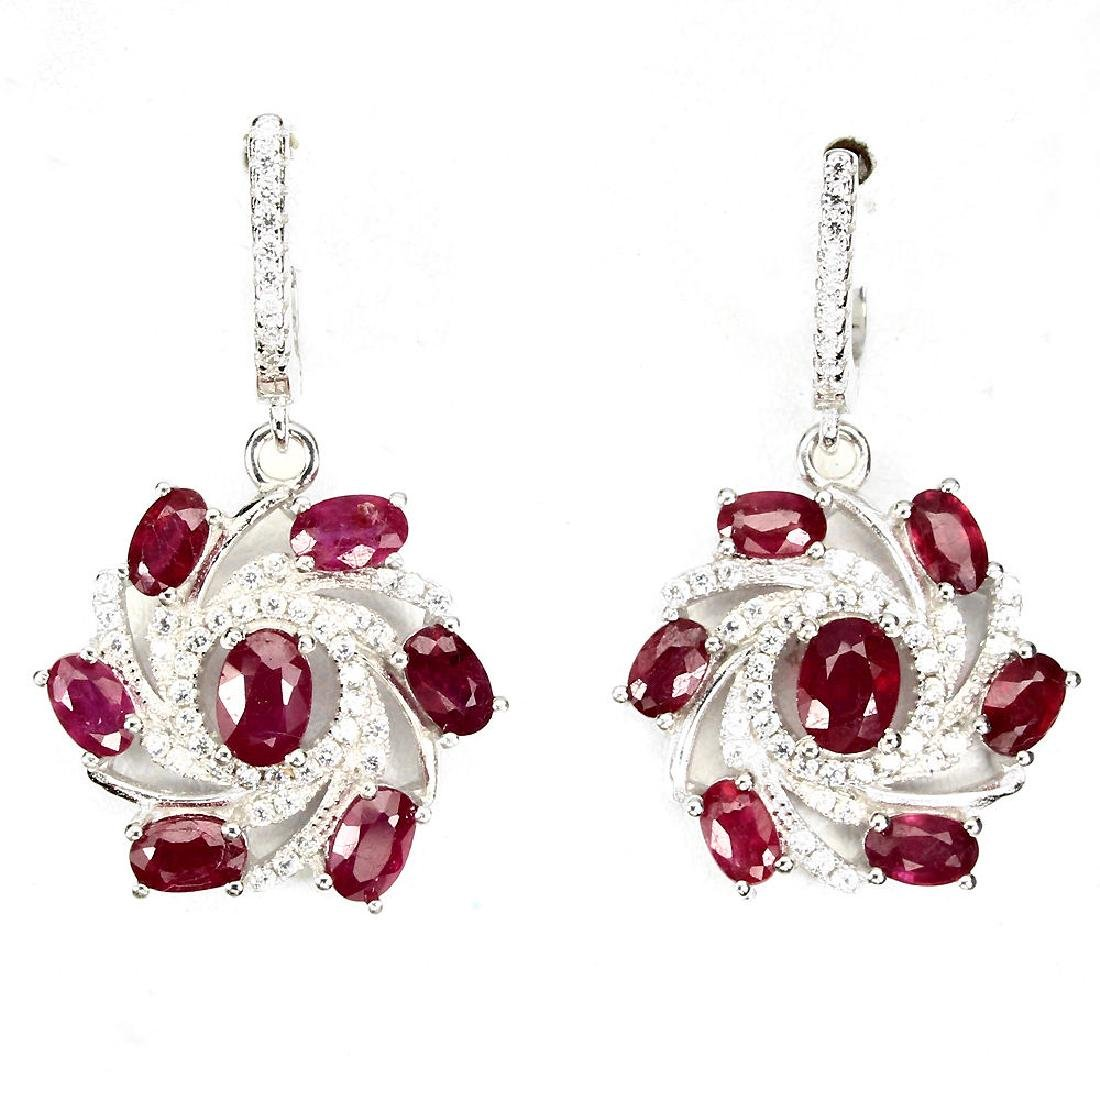 Natural Red Ruby 34.25 Cts Earrings